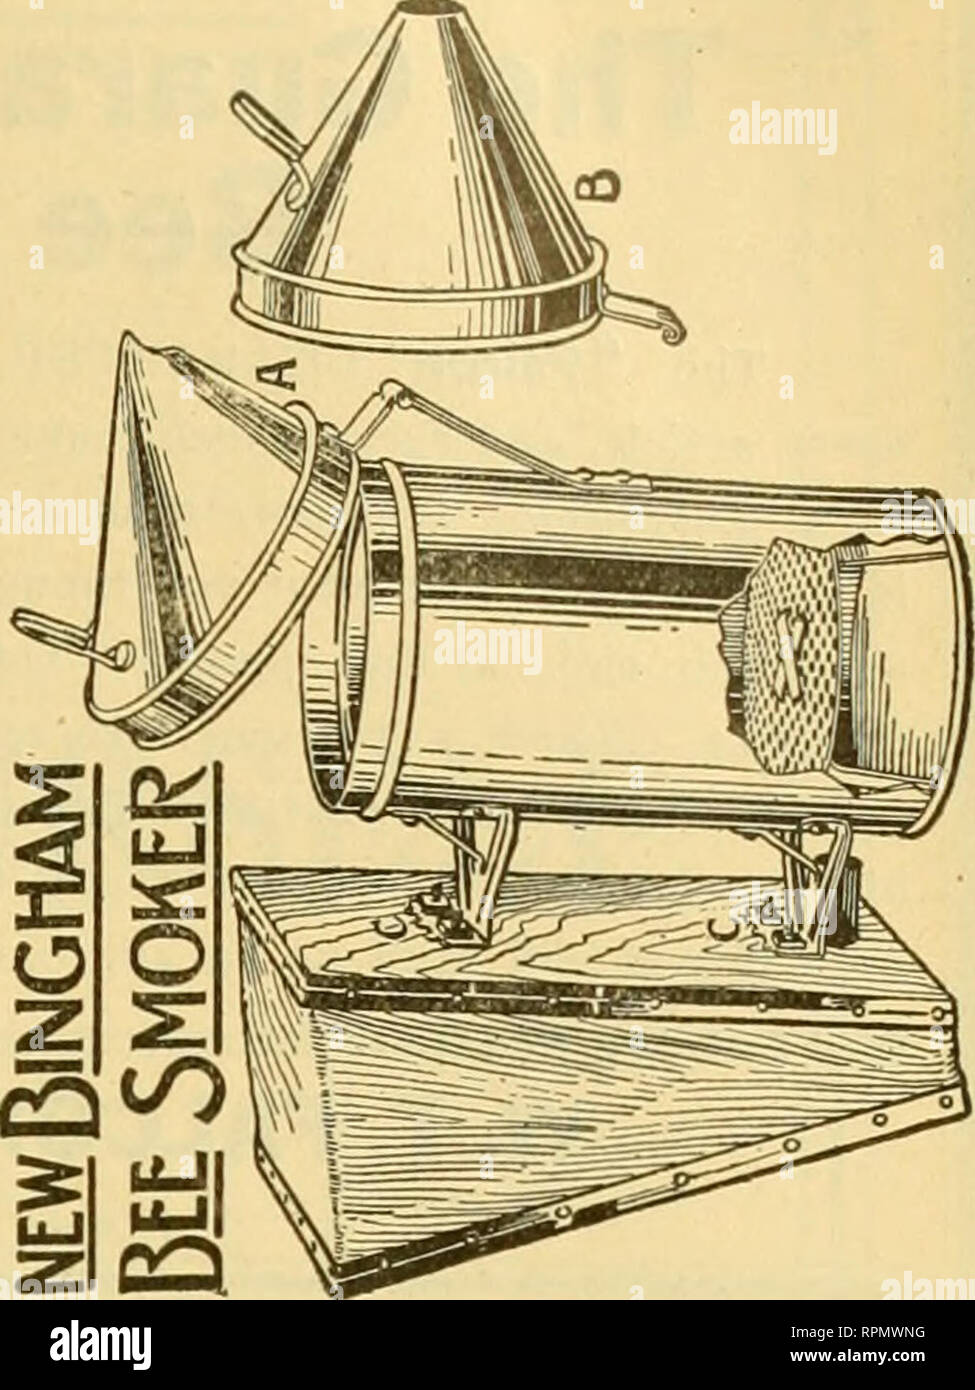 . American bee journal. Bee culture; Bees. PATENTED Wright's Frame-Wiring Device Most rapid in use. Saves cost of machine i one day. Tighter wires, no kinks, no sore ands. Price, $2.5C, postpaid in U. S. A. G. W. Wright Company, Azusa, Calf. THE FAMOUS DAVIS 60LDENS And get big yields from gentle bees* Write for Circular and Price List. BEN G. DAVIS, Spring Hill, Tennessee. NOTICE—Special Sale on Sections Xo. 1 Beeway $6.00, No. 2 $5.50 per 1,000 No. 1 Plain $5.75, No. 2 $5.25 per 1,000 All other supplies at a reduced price. Get our orders in when you see this. The Old Bee and Honey Man, W. D. - Stock Image